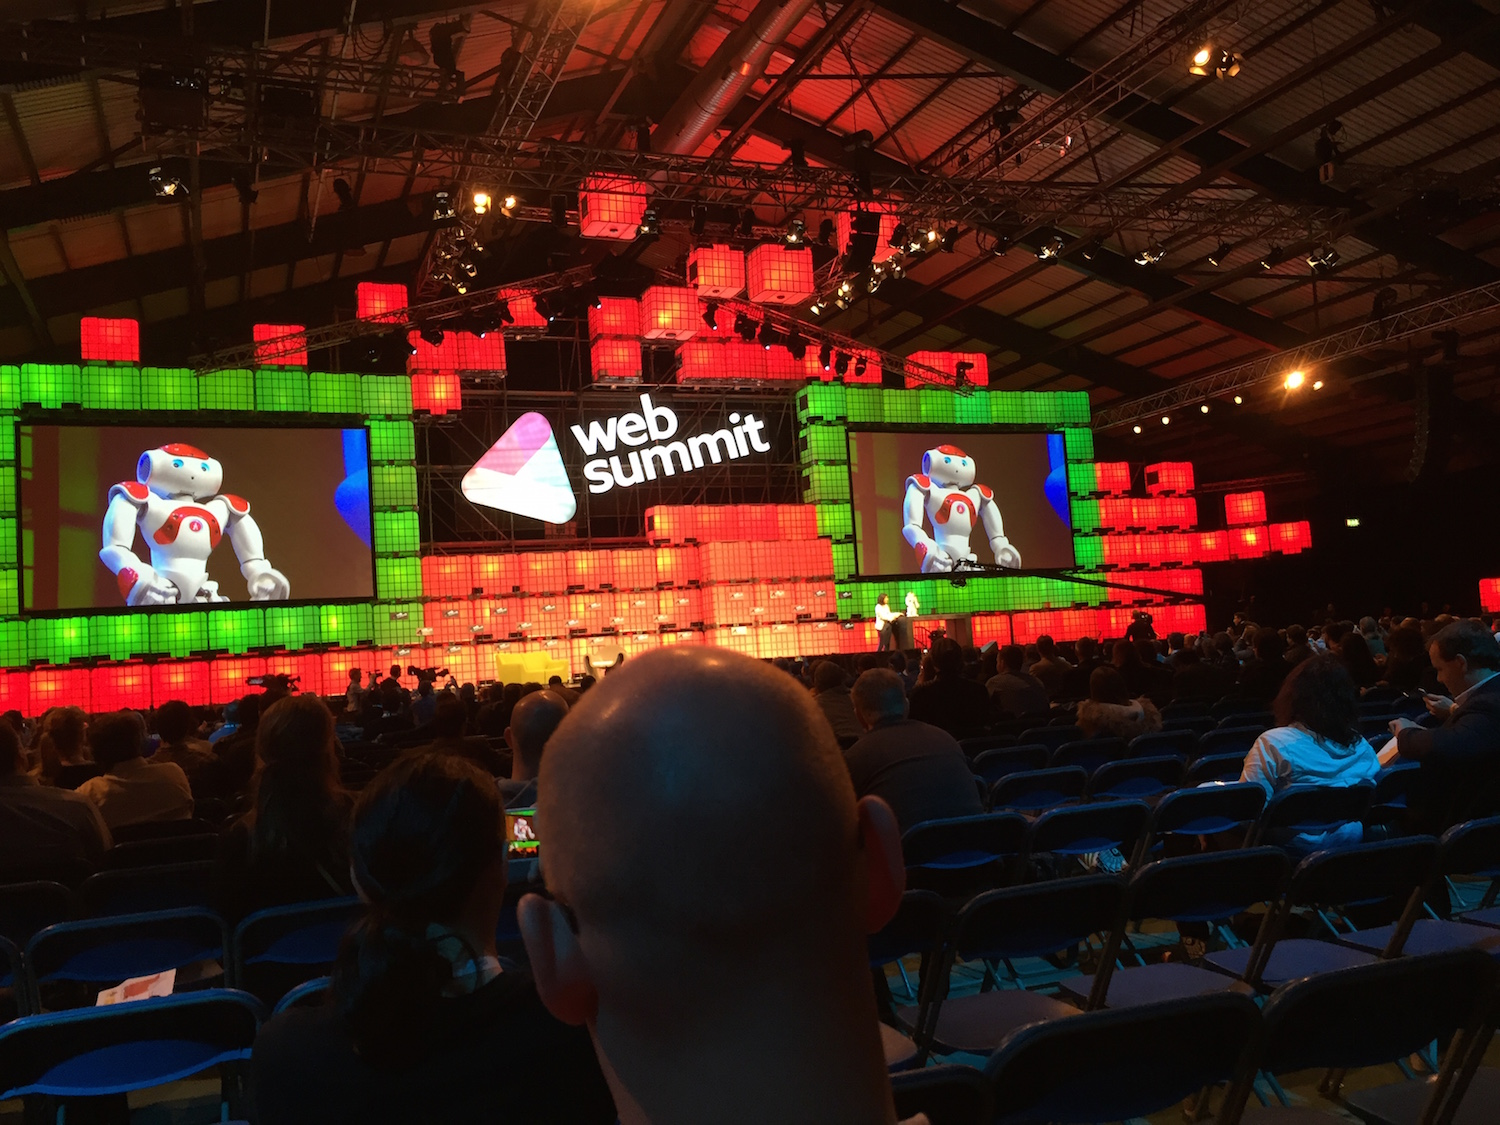 Web Summit Centre stage